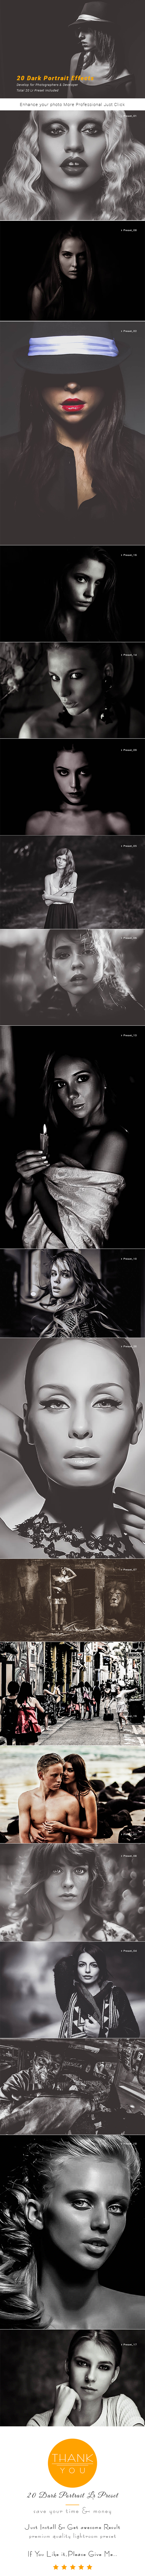 GraphicRiver 20 Dark Portrait Effects 20610477